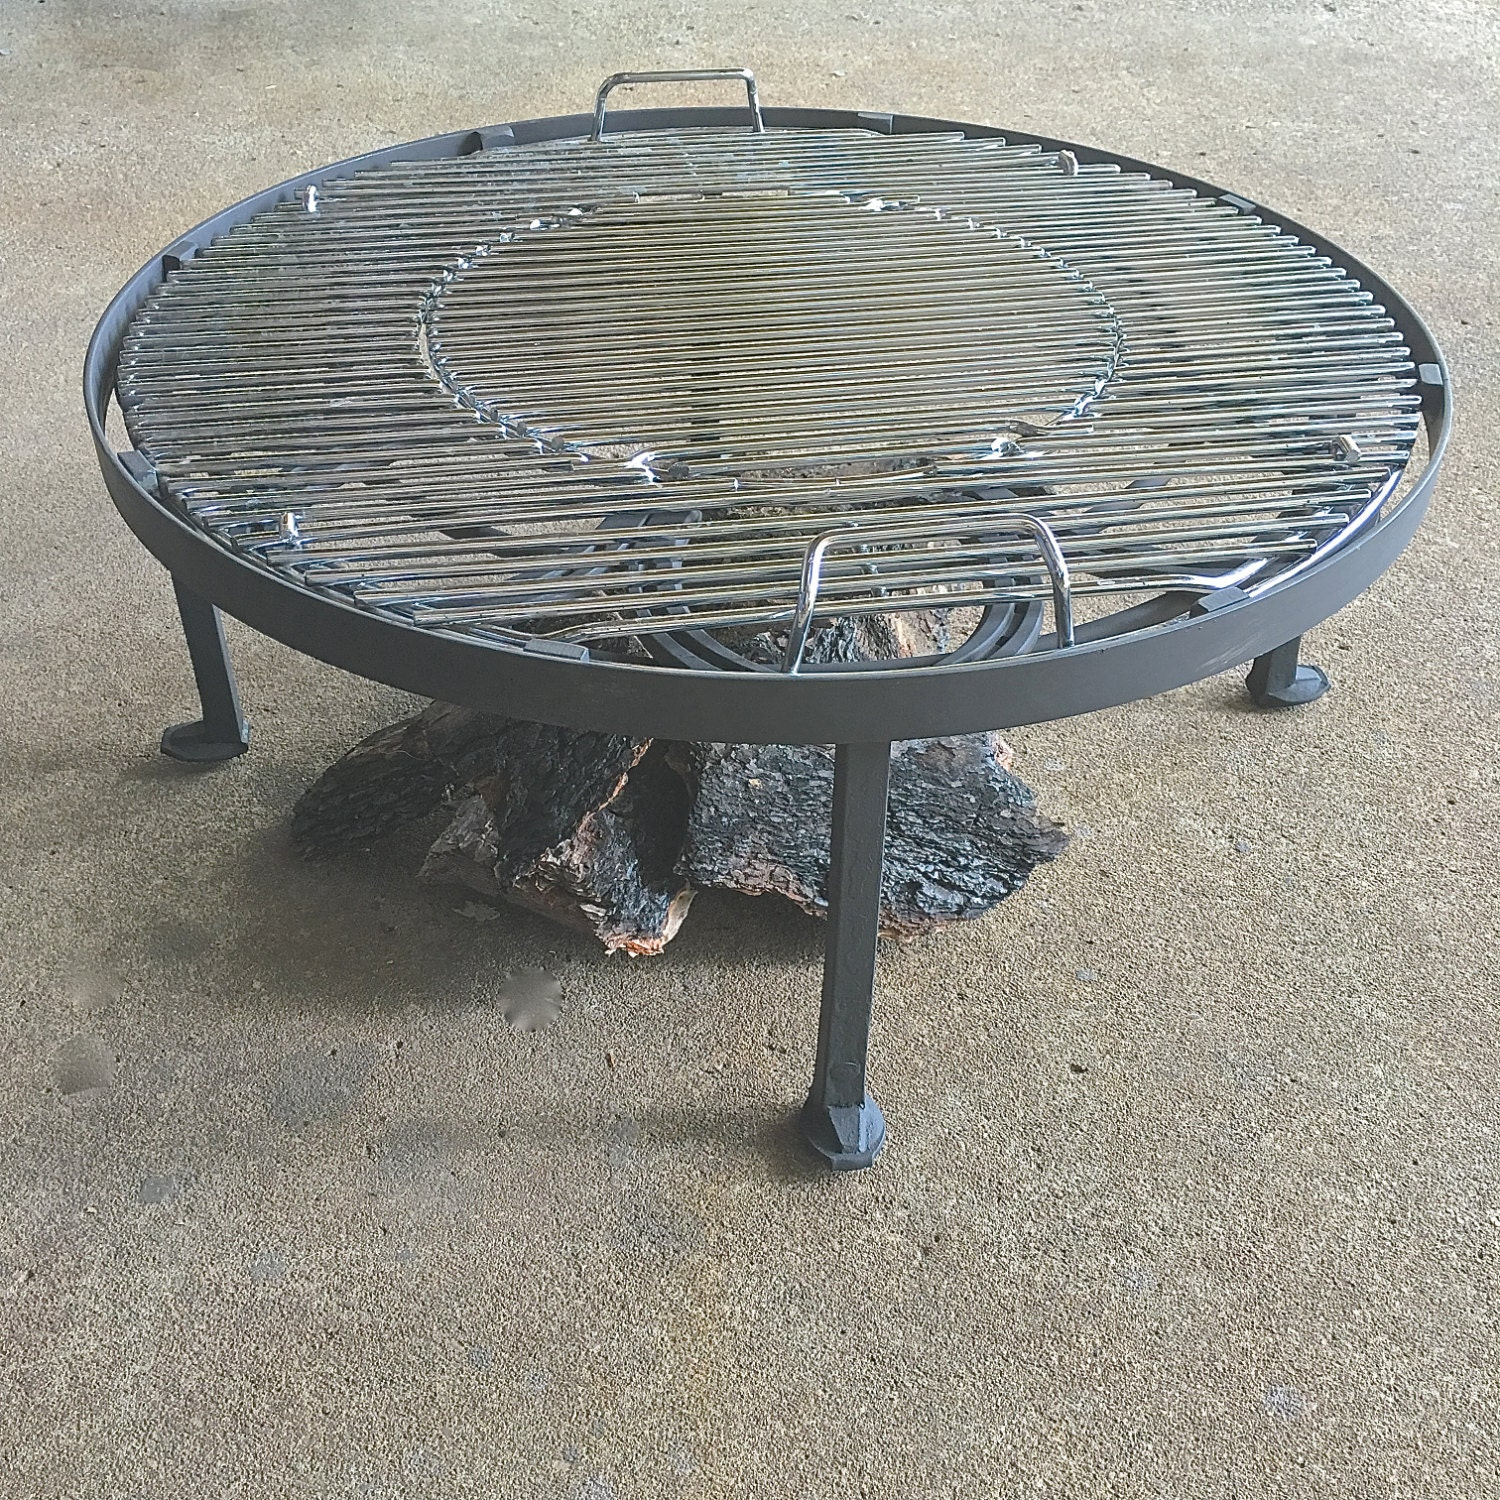 Outdoor Firepit Stand heavy duty round metal stand BBQ